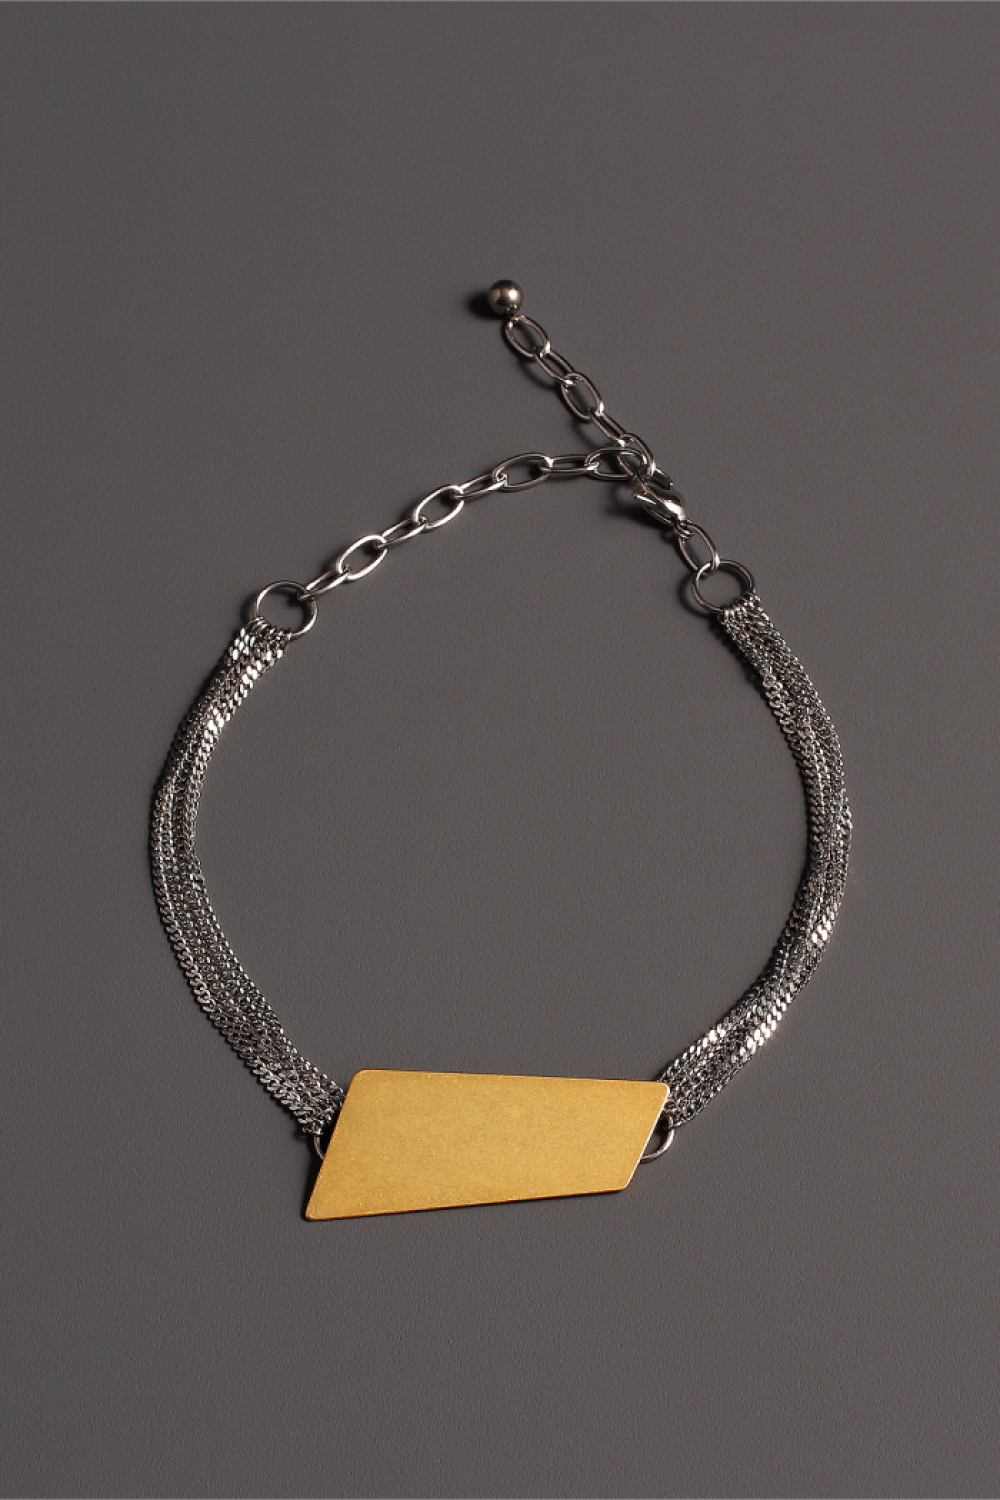 [모드곤] Golden iceberg choker necklace